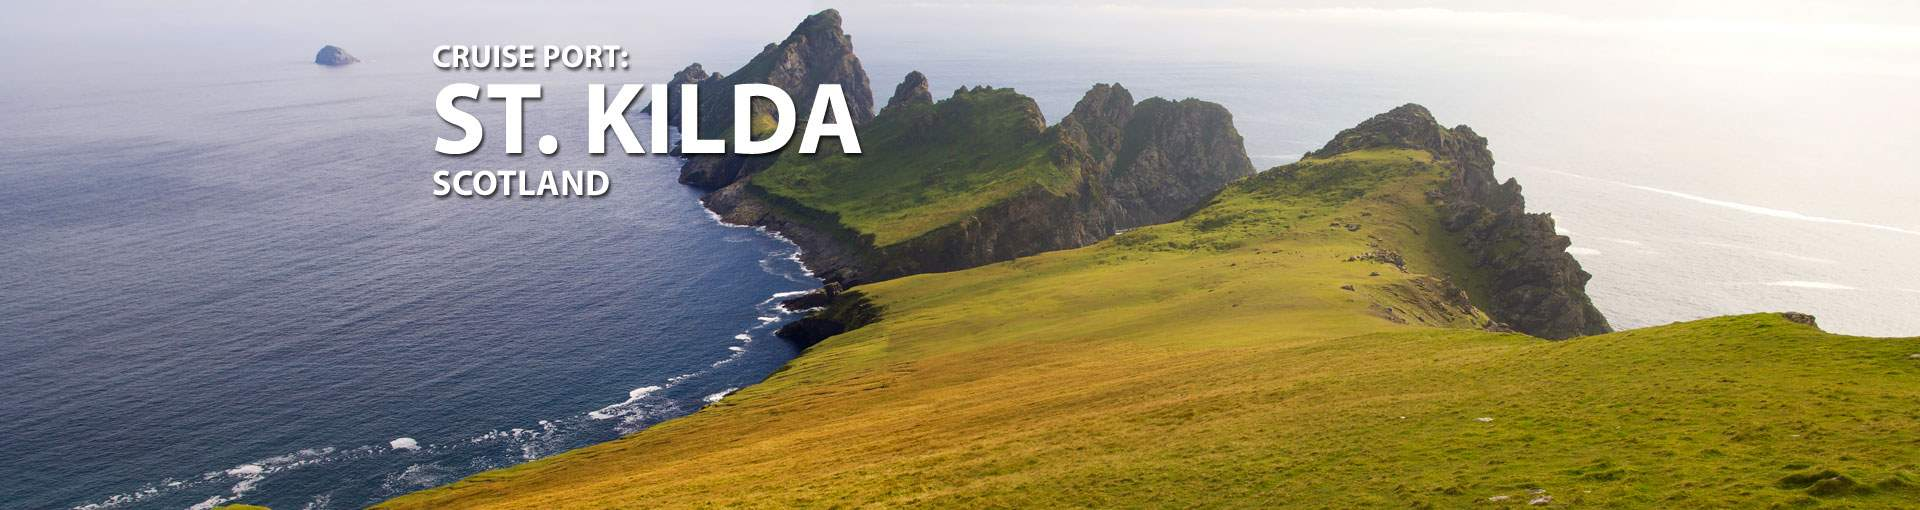 Cruises to St. Kilda, Scotland